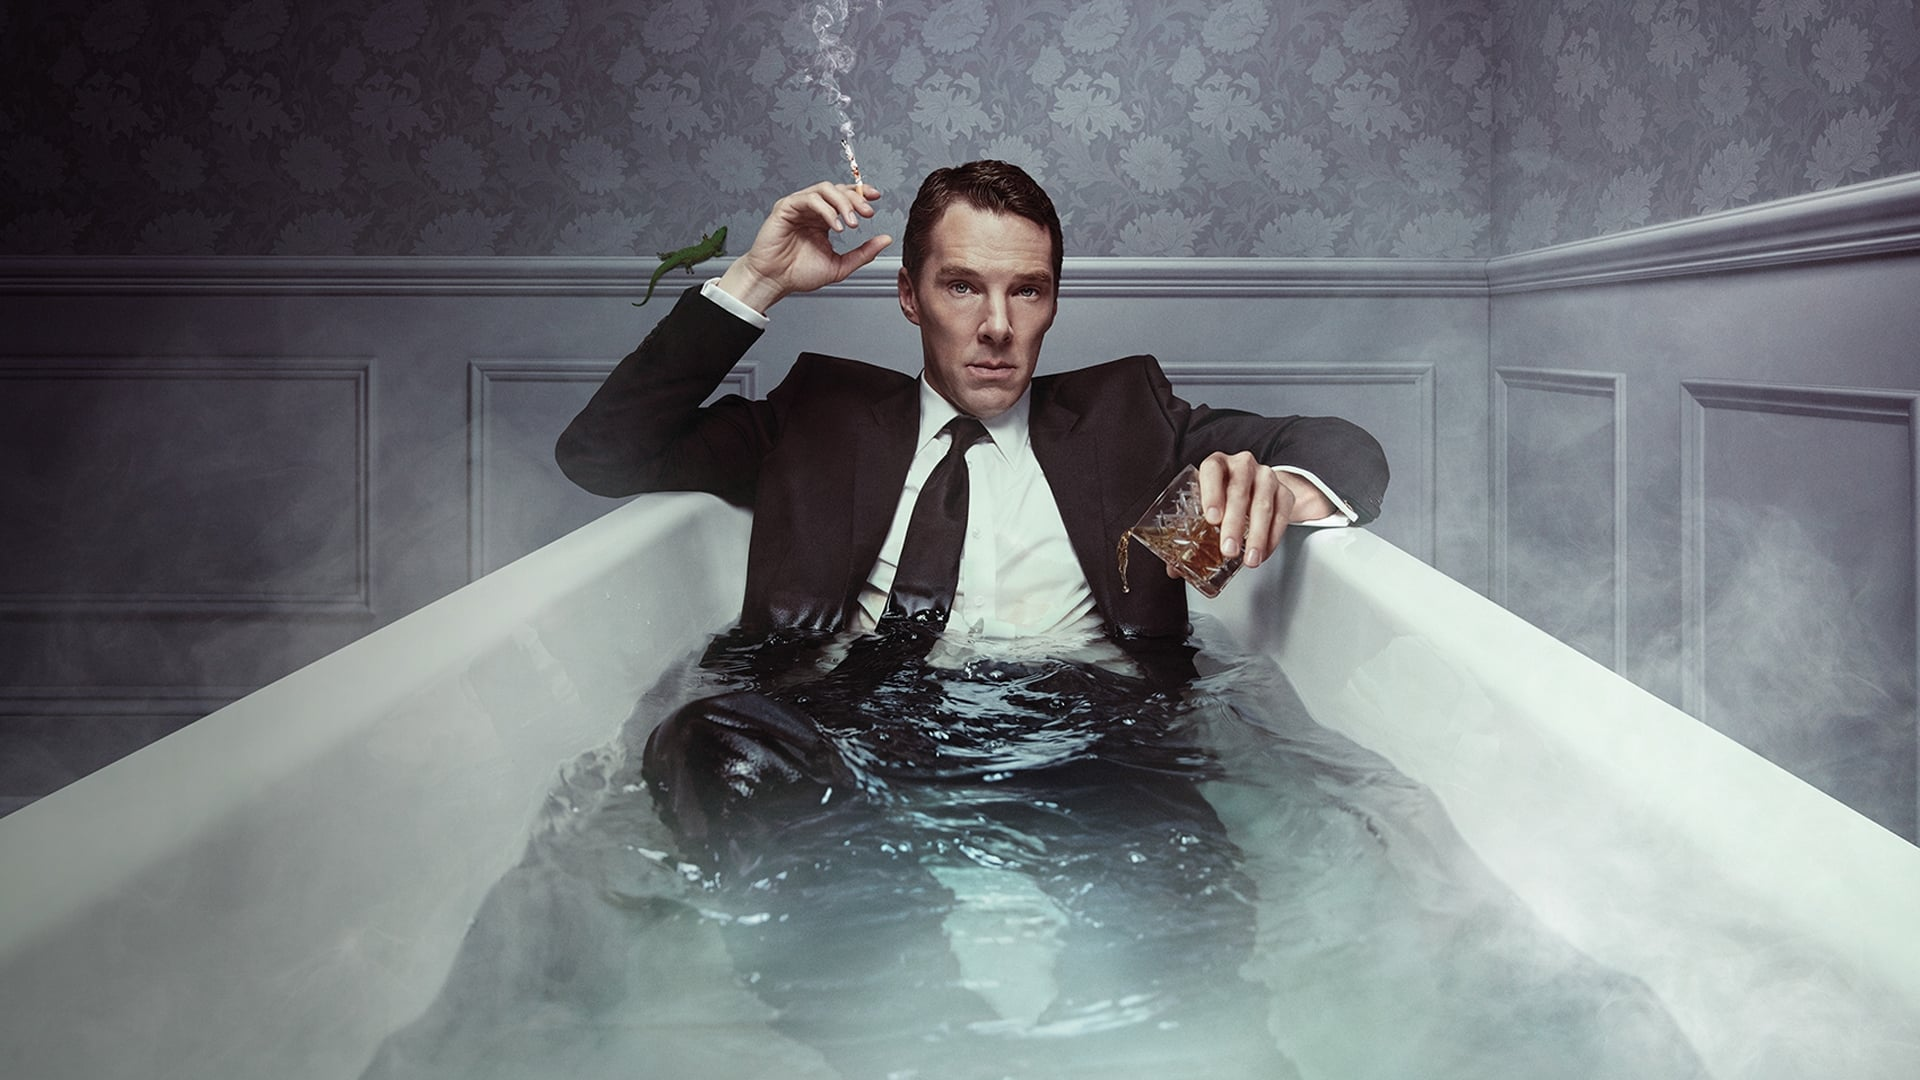 A Very English Scandal | AMAZON PRIME VIDEO | fox A Very English Scandal, AMAZON PRIME VIDEO, fox, FX, Golden Globes, HBO, NETFLIX, Patrick Melrose, The Alienist, The Assassination of Gianni Versace: American Crime Story, The Handmaid's Tale, The Kominsky Method, The Marvelous Mrs. Maisel, Χρυσές Σφαίρες, ΧΡΥΣΕΣ ΣΦΑΙΡΕΣ 2019